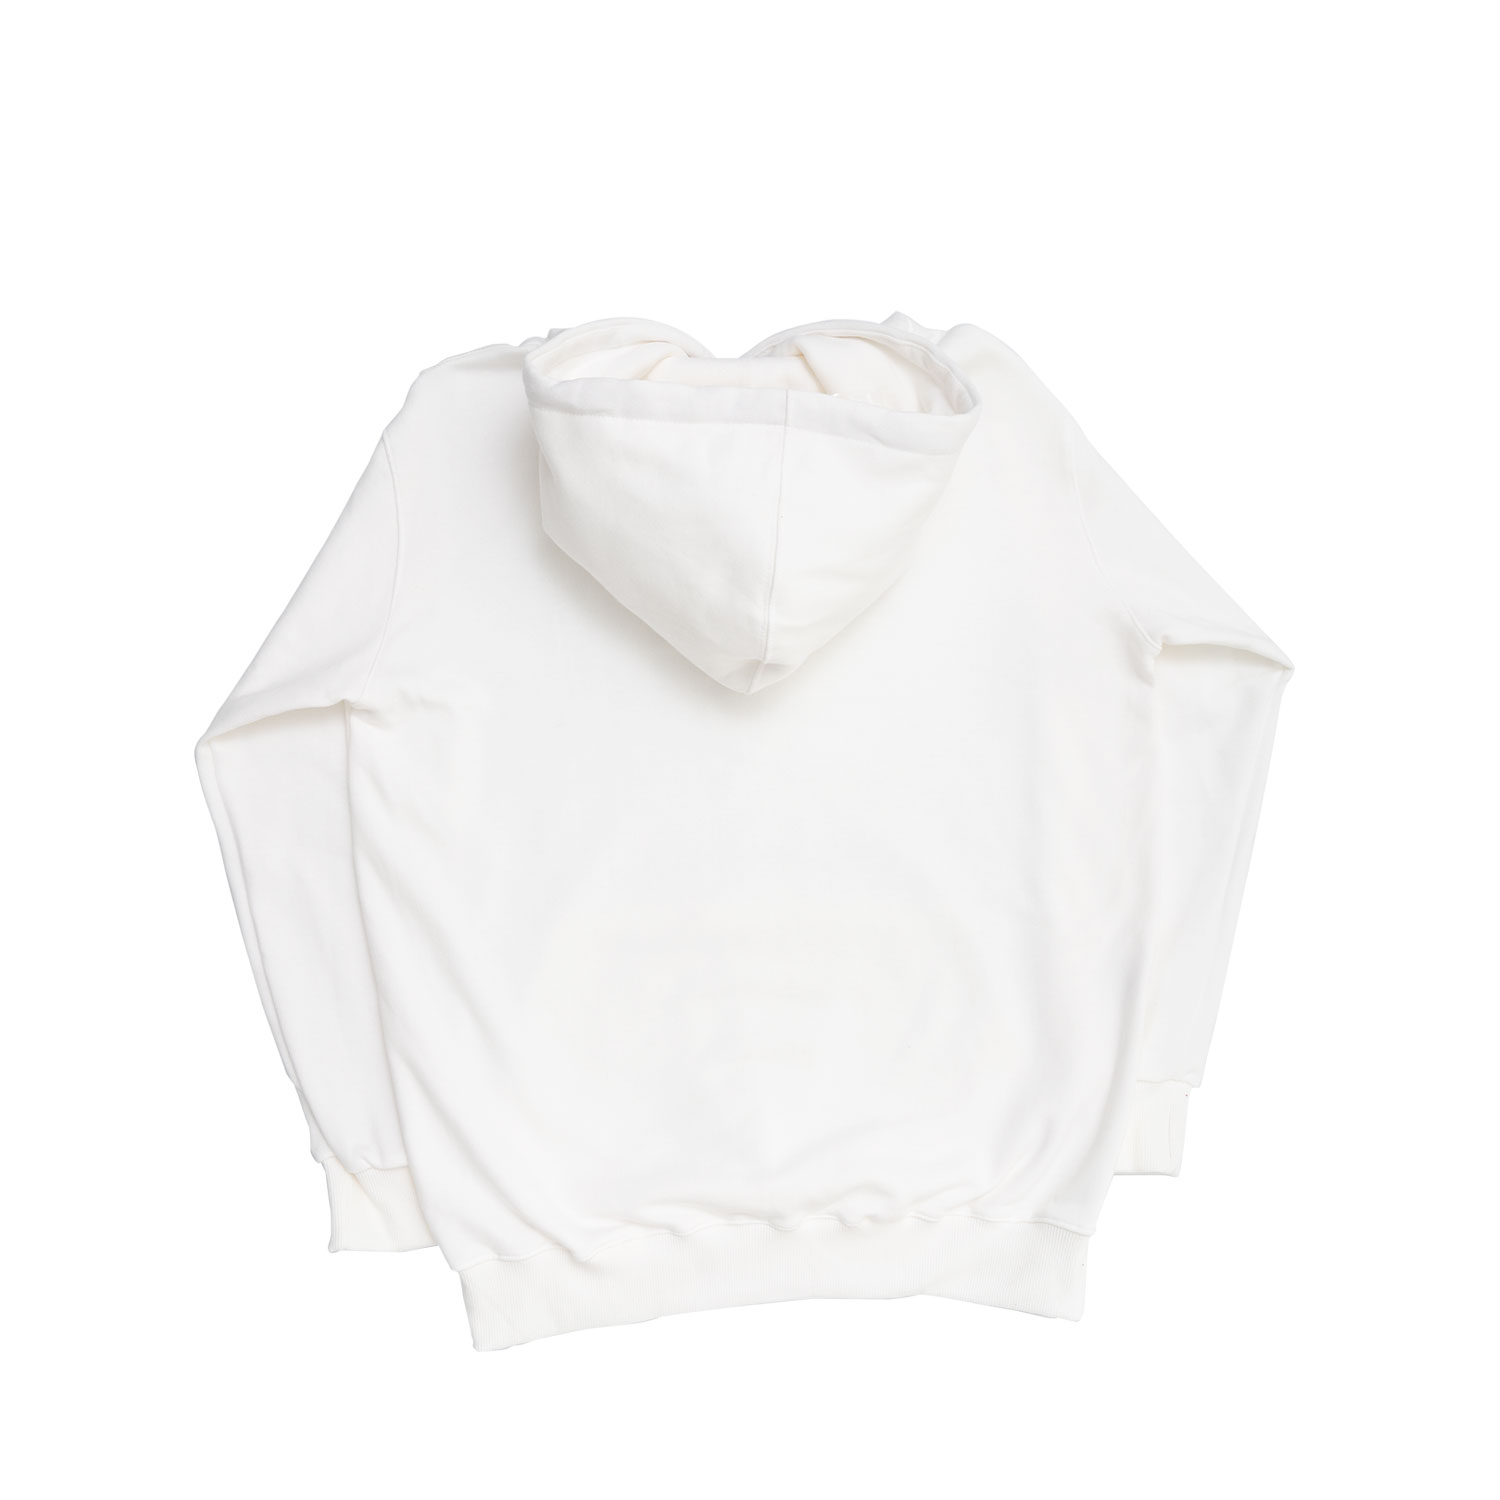 Hoodie_Marks_White